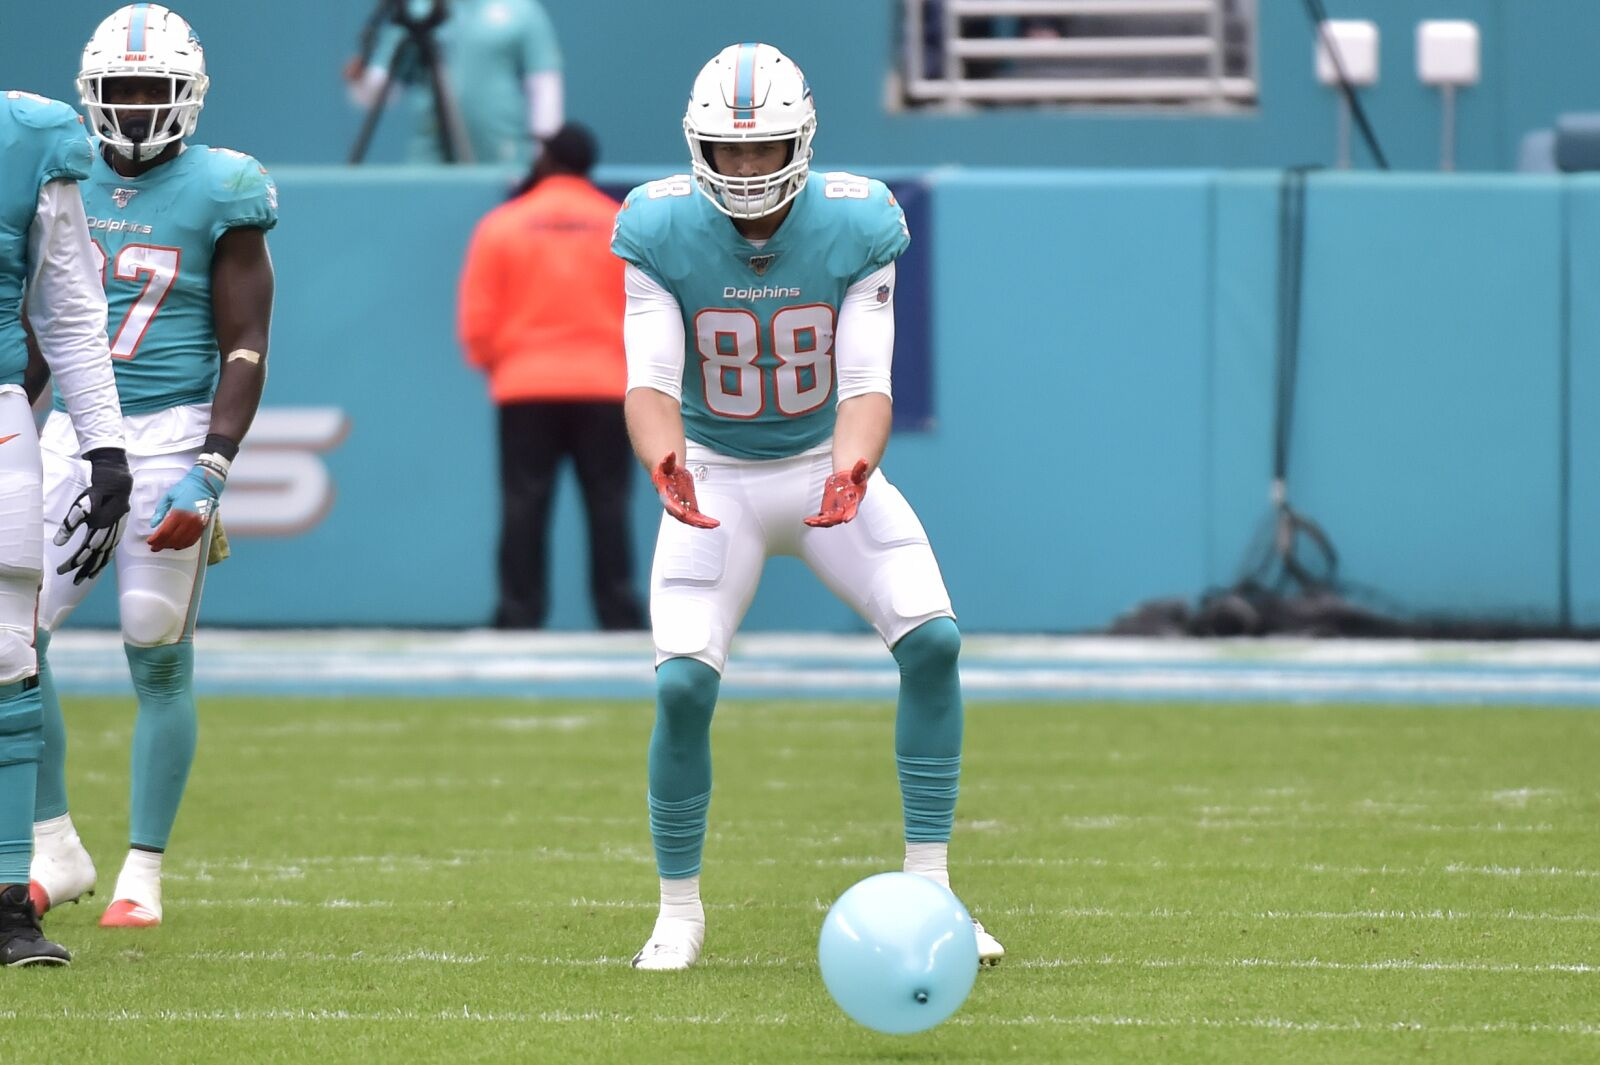 Miami Dolphins winning streak ends at two despite attempt at comeback